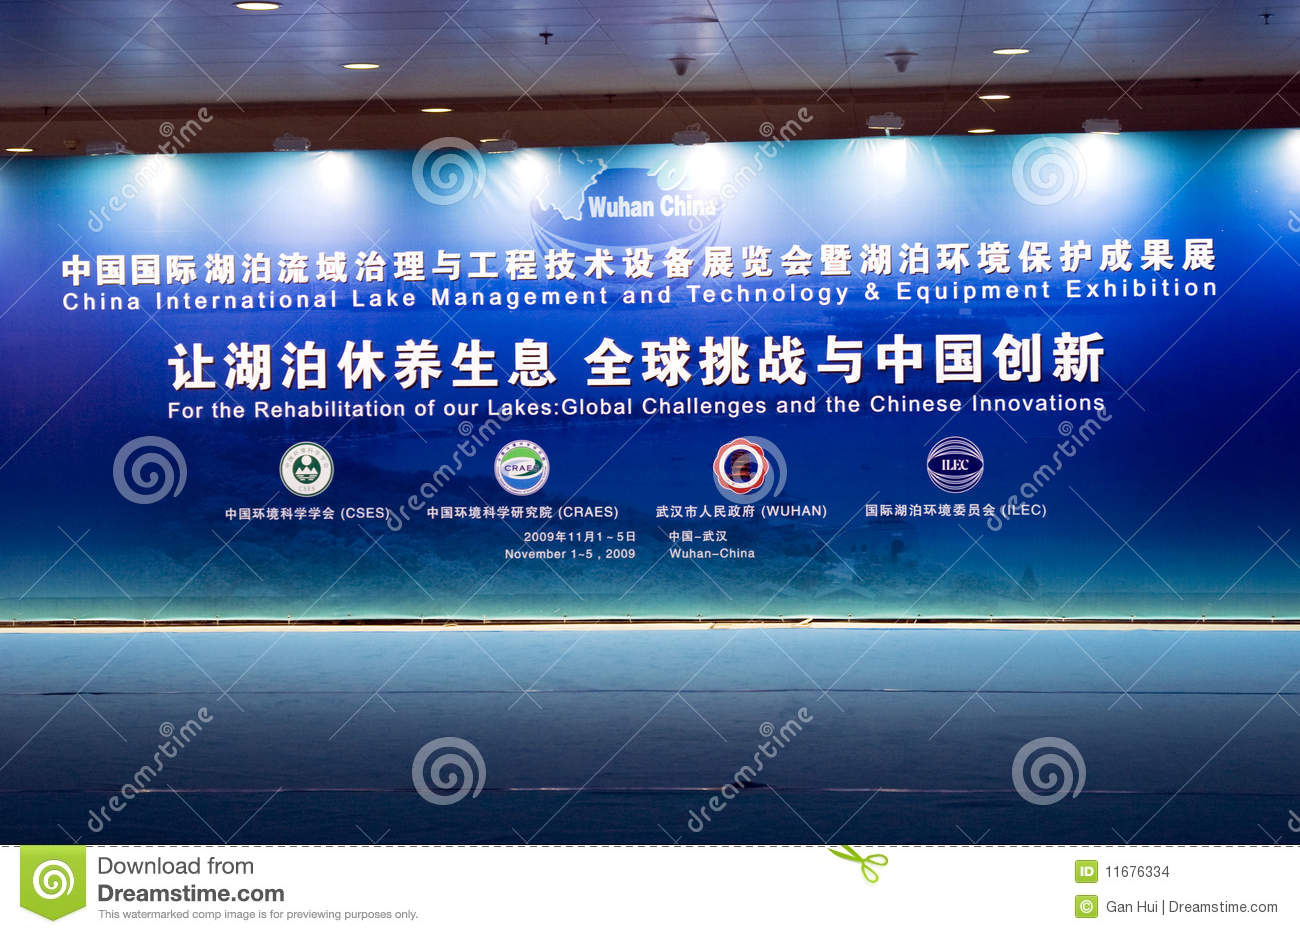 Time Management And Technology: China International Lake Management And Technology